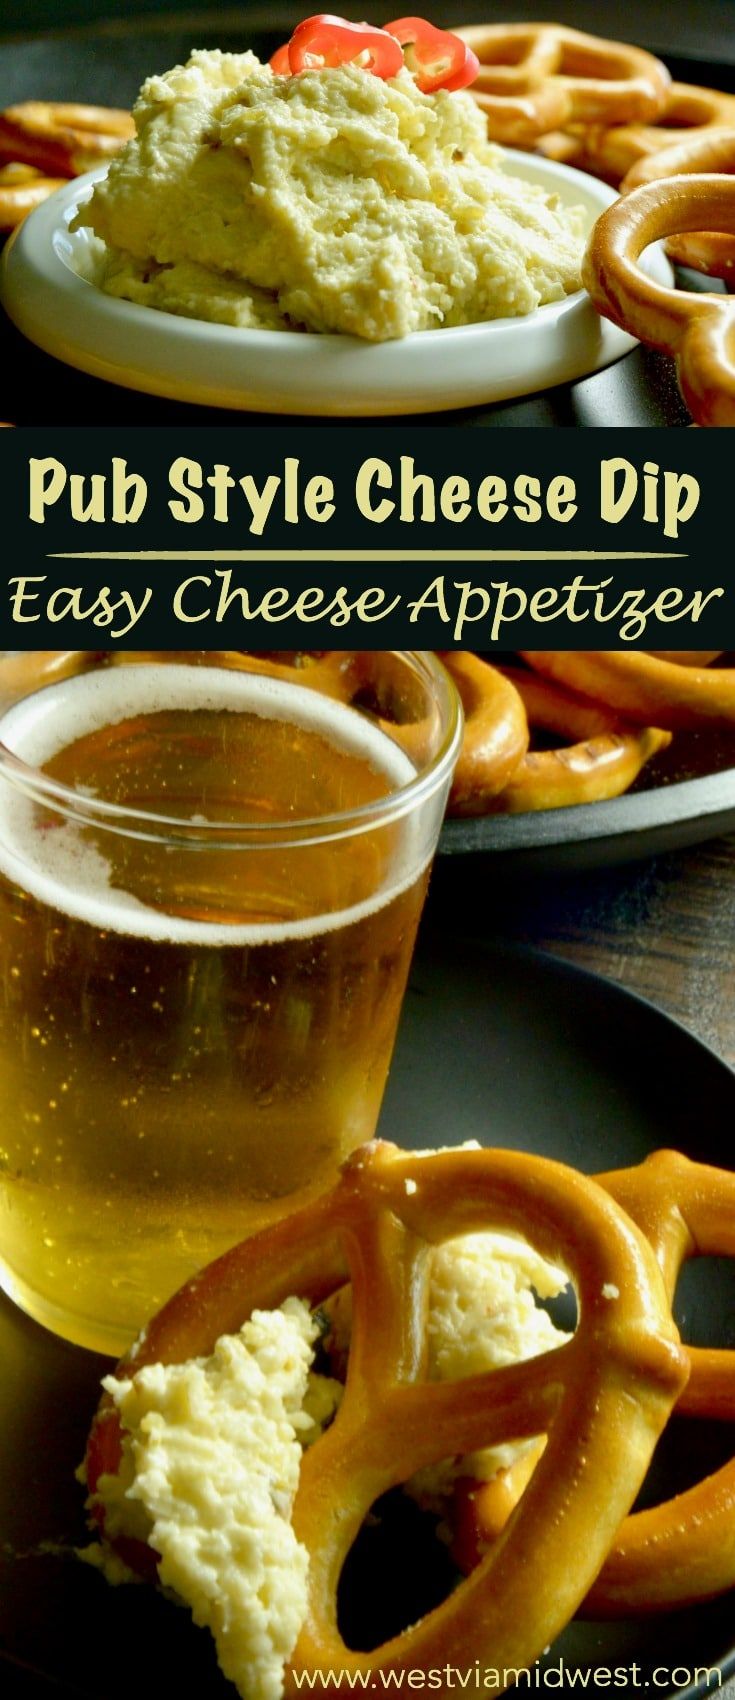 Hatch Chili Pub Style Cheese Dip is an easy appetizer that is great for parties, football game days or just as a snack.  Spreadable cheeses with a slight kick, great for entertaining!